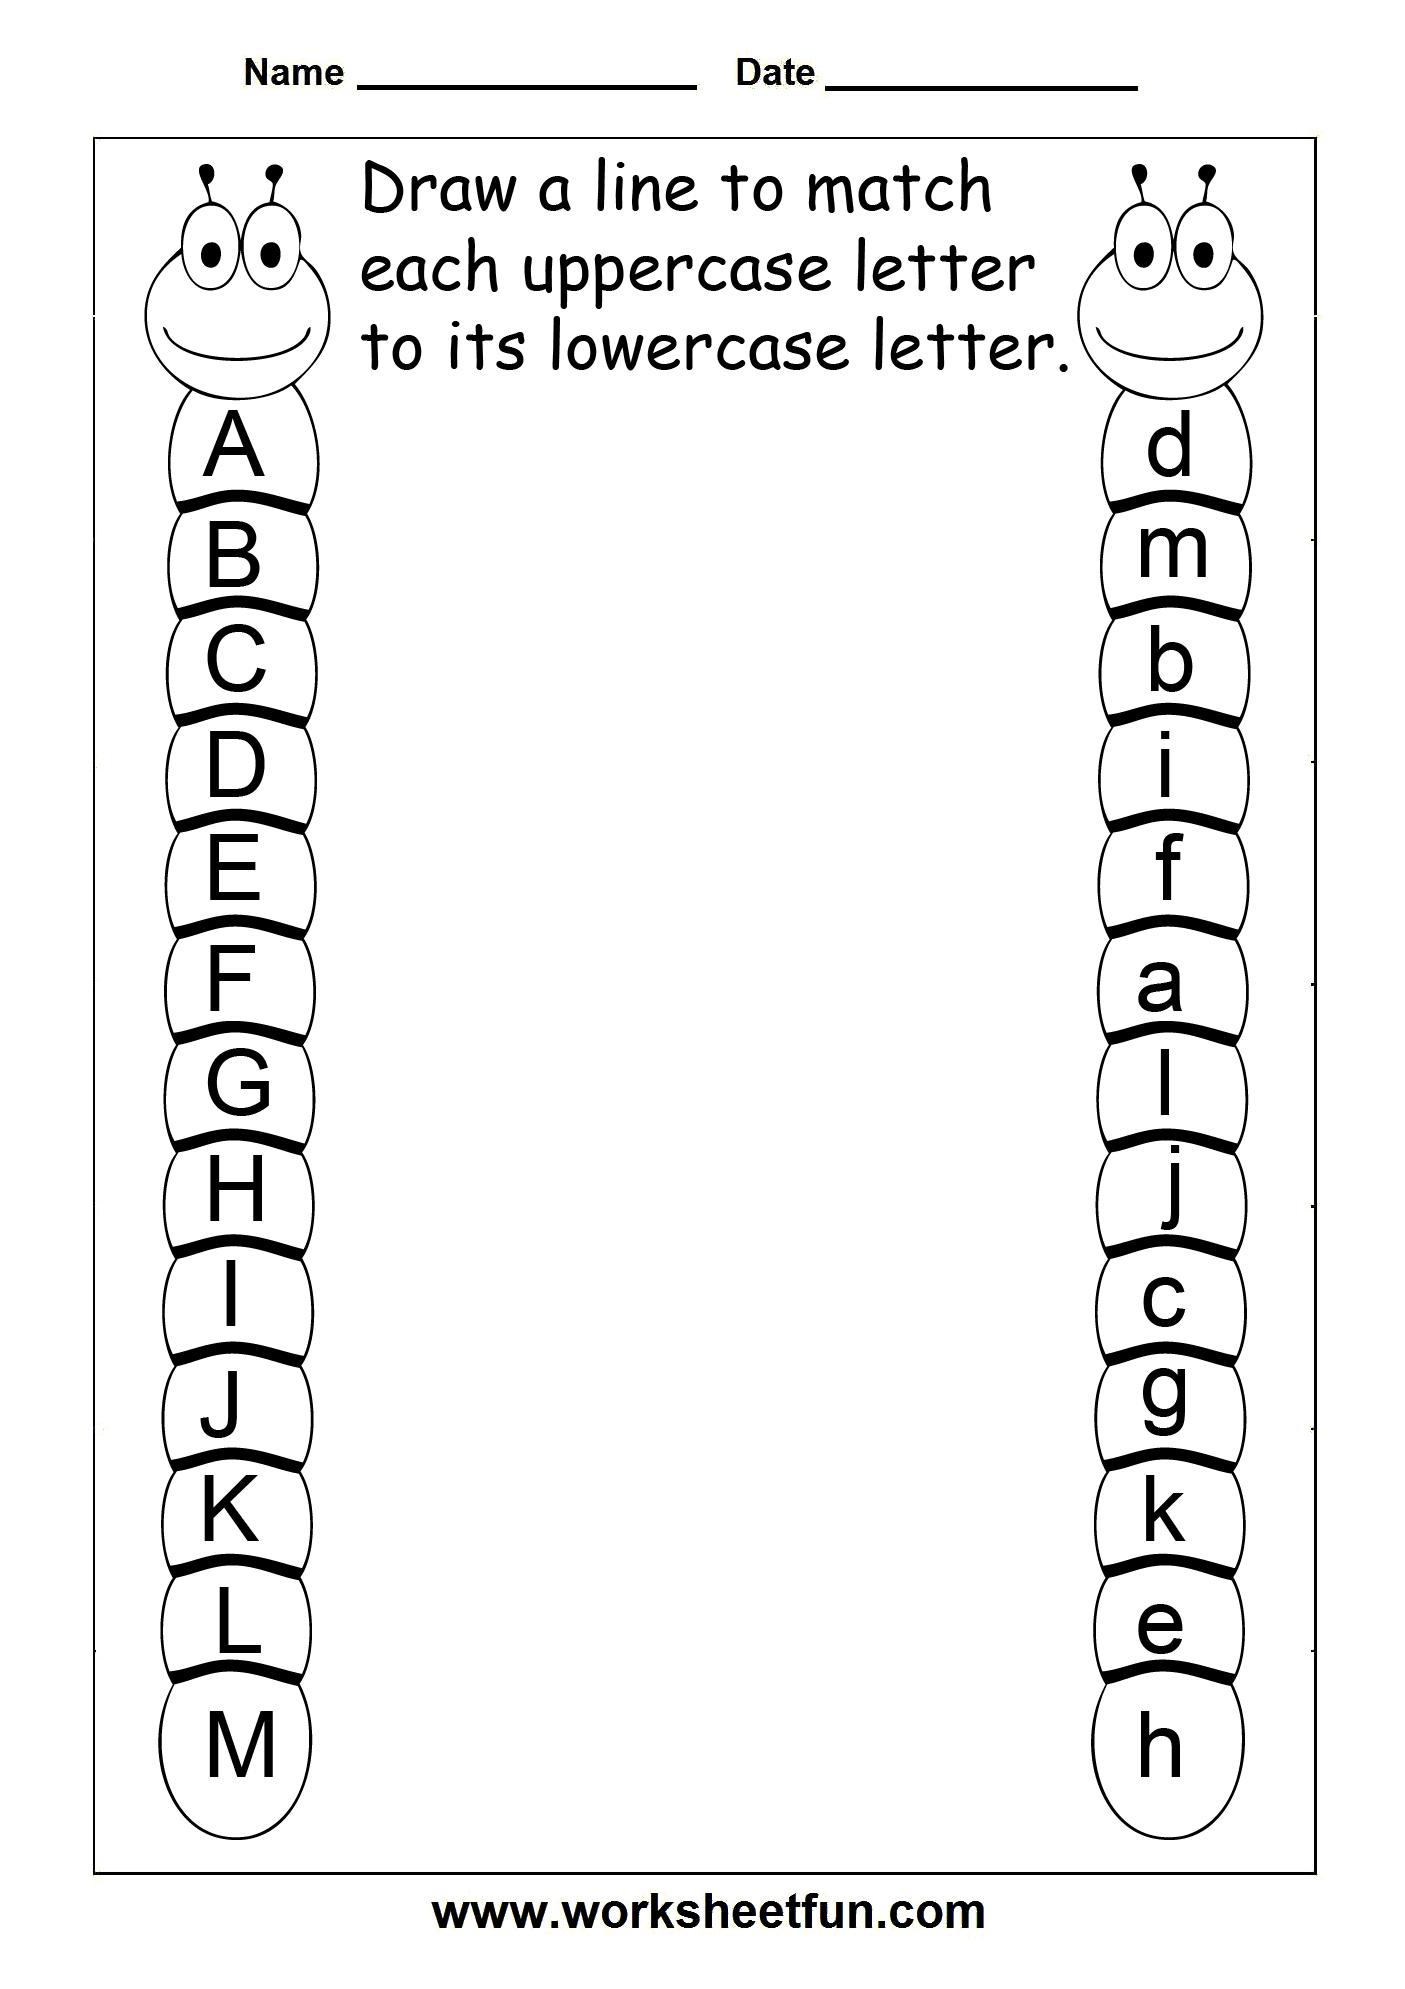 Aldiablosus  Surprising  Images About Work Worksheet On Pinterest  Coins Hidden  With Exquisite  Images About Work Worksheet On Pinterest  Coins Hidden Pictures And Thanksgiving With Cool Fractions Grade  Worksheets Also Multiple Meaning Worksheets Nd Grade In Addition Multiplication On Number Line Worksheets And Active And Passive Sentences Worksheet As Well As Patterns And Rules Worksheets Additionally Repeated Addition Worksheets Ks From Pinterestcom With Aldiablosus  Exquisite  Images About Work Worksheet On Pinterest  Coins Hidden  With Cool  Images About Work Worksheet On Pinterest  Coins Hidden Pictures And Thanksgiving And Surprising Fractions Grade  Worksheets Also Multiple Meaning Worksheets Nd Grade In Addition Multiplication On Number Line Worksheets From Pinterestcom